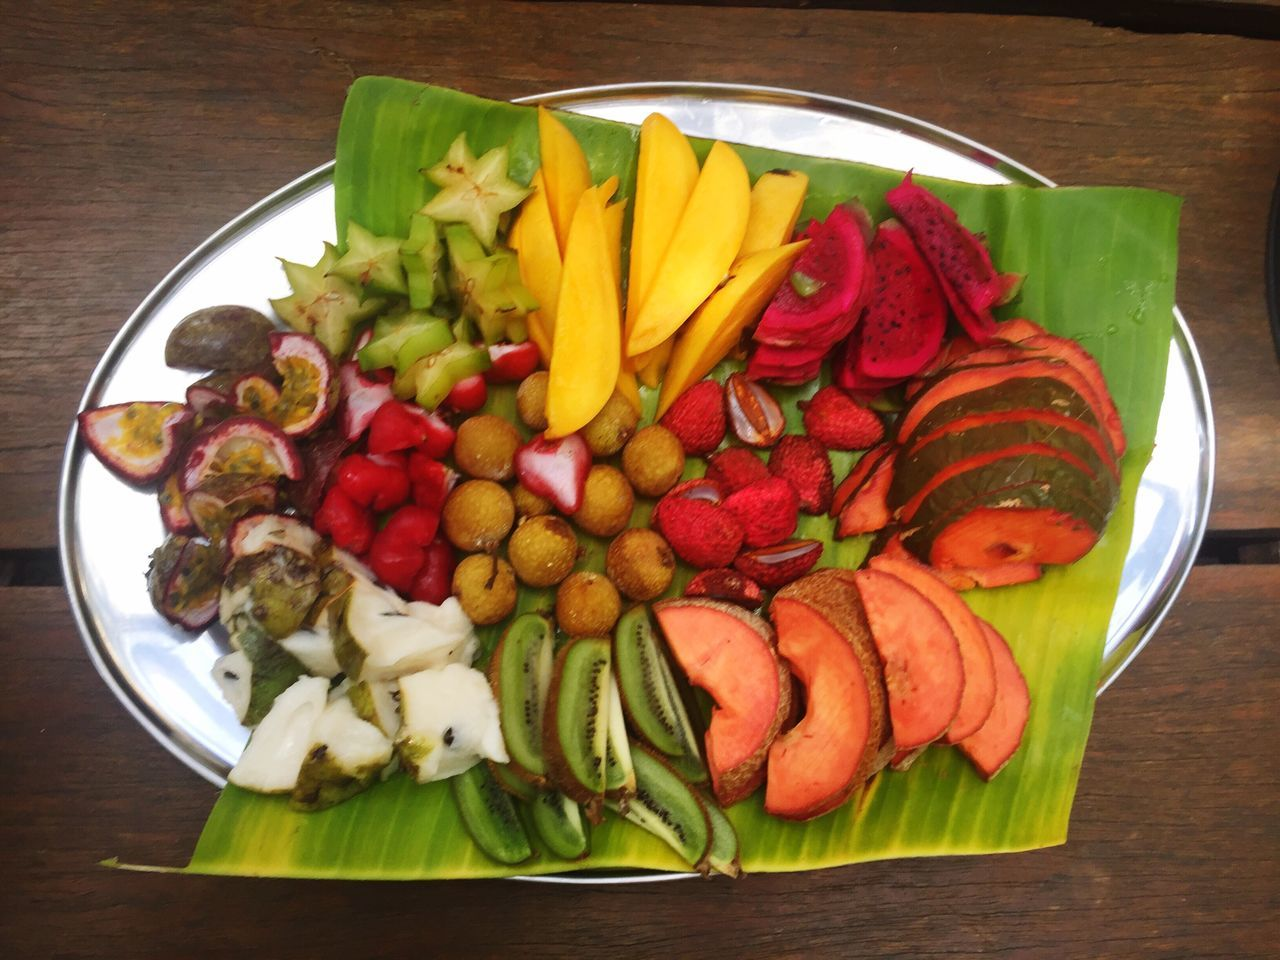 Fruit Food Freshness Ready-to-eat Table Healthy Eating Close-up Food And Drink Plate No People Vegetable Indoors  High Angle View Directly Above Day